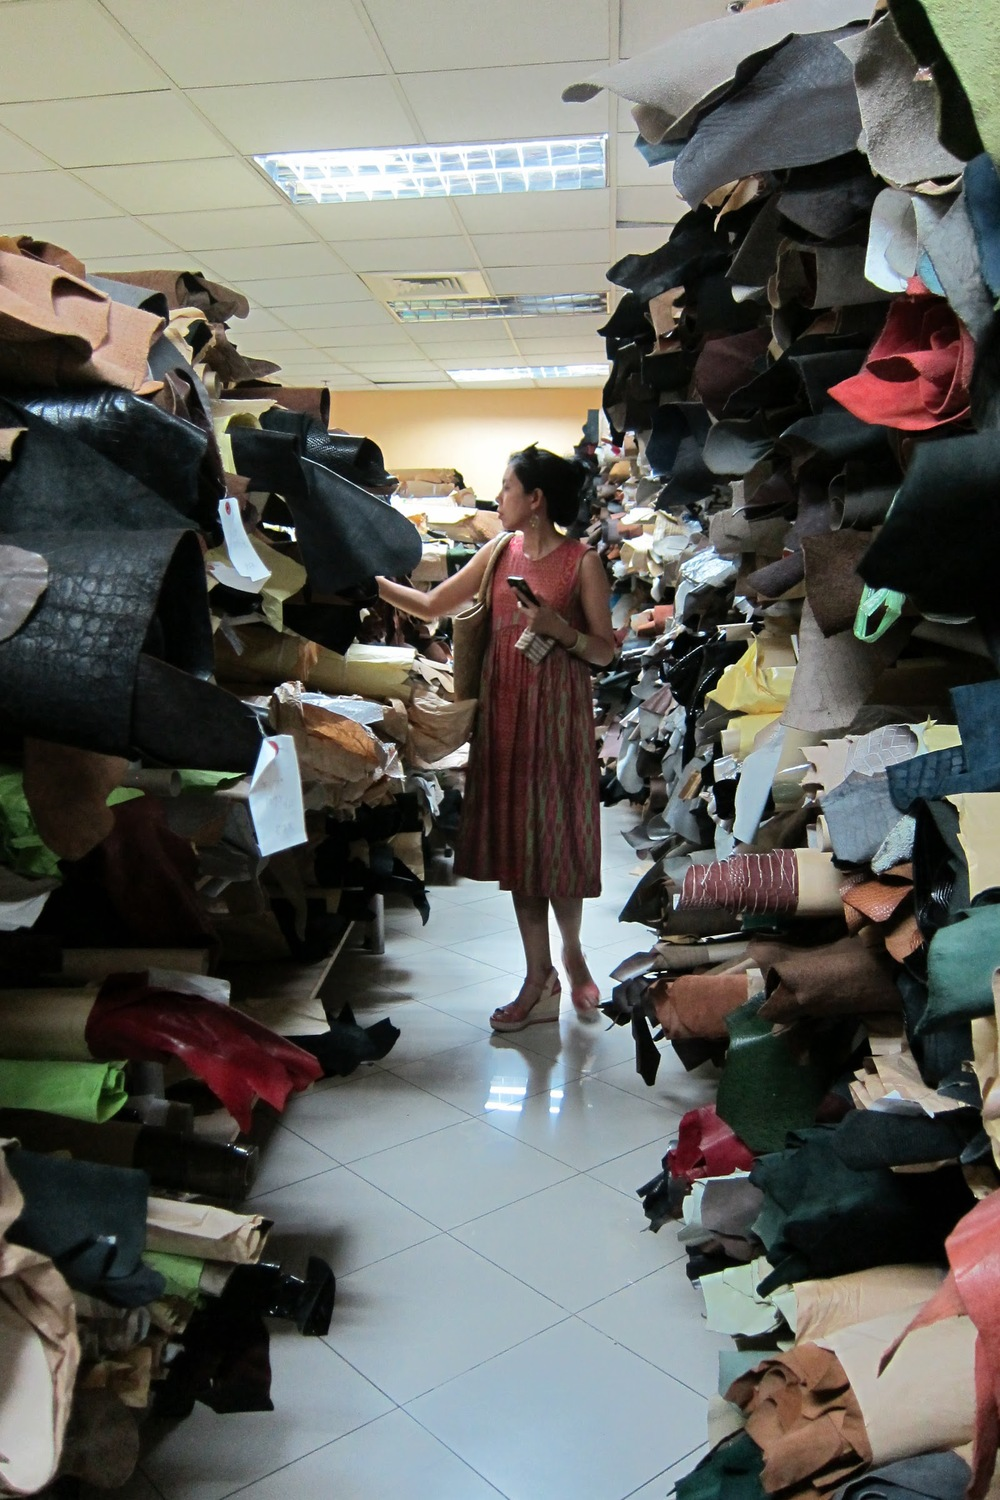 Sourcing for leather in Marikina, Philippines.